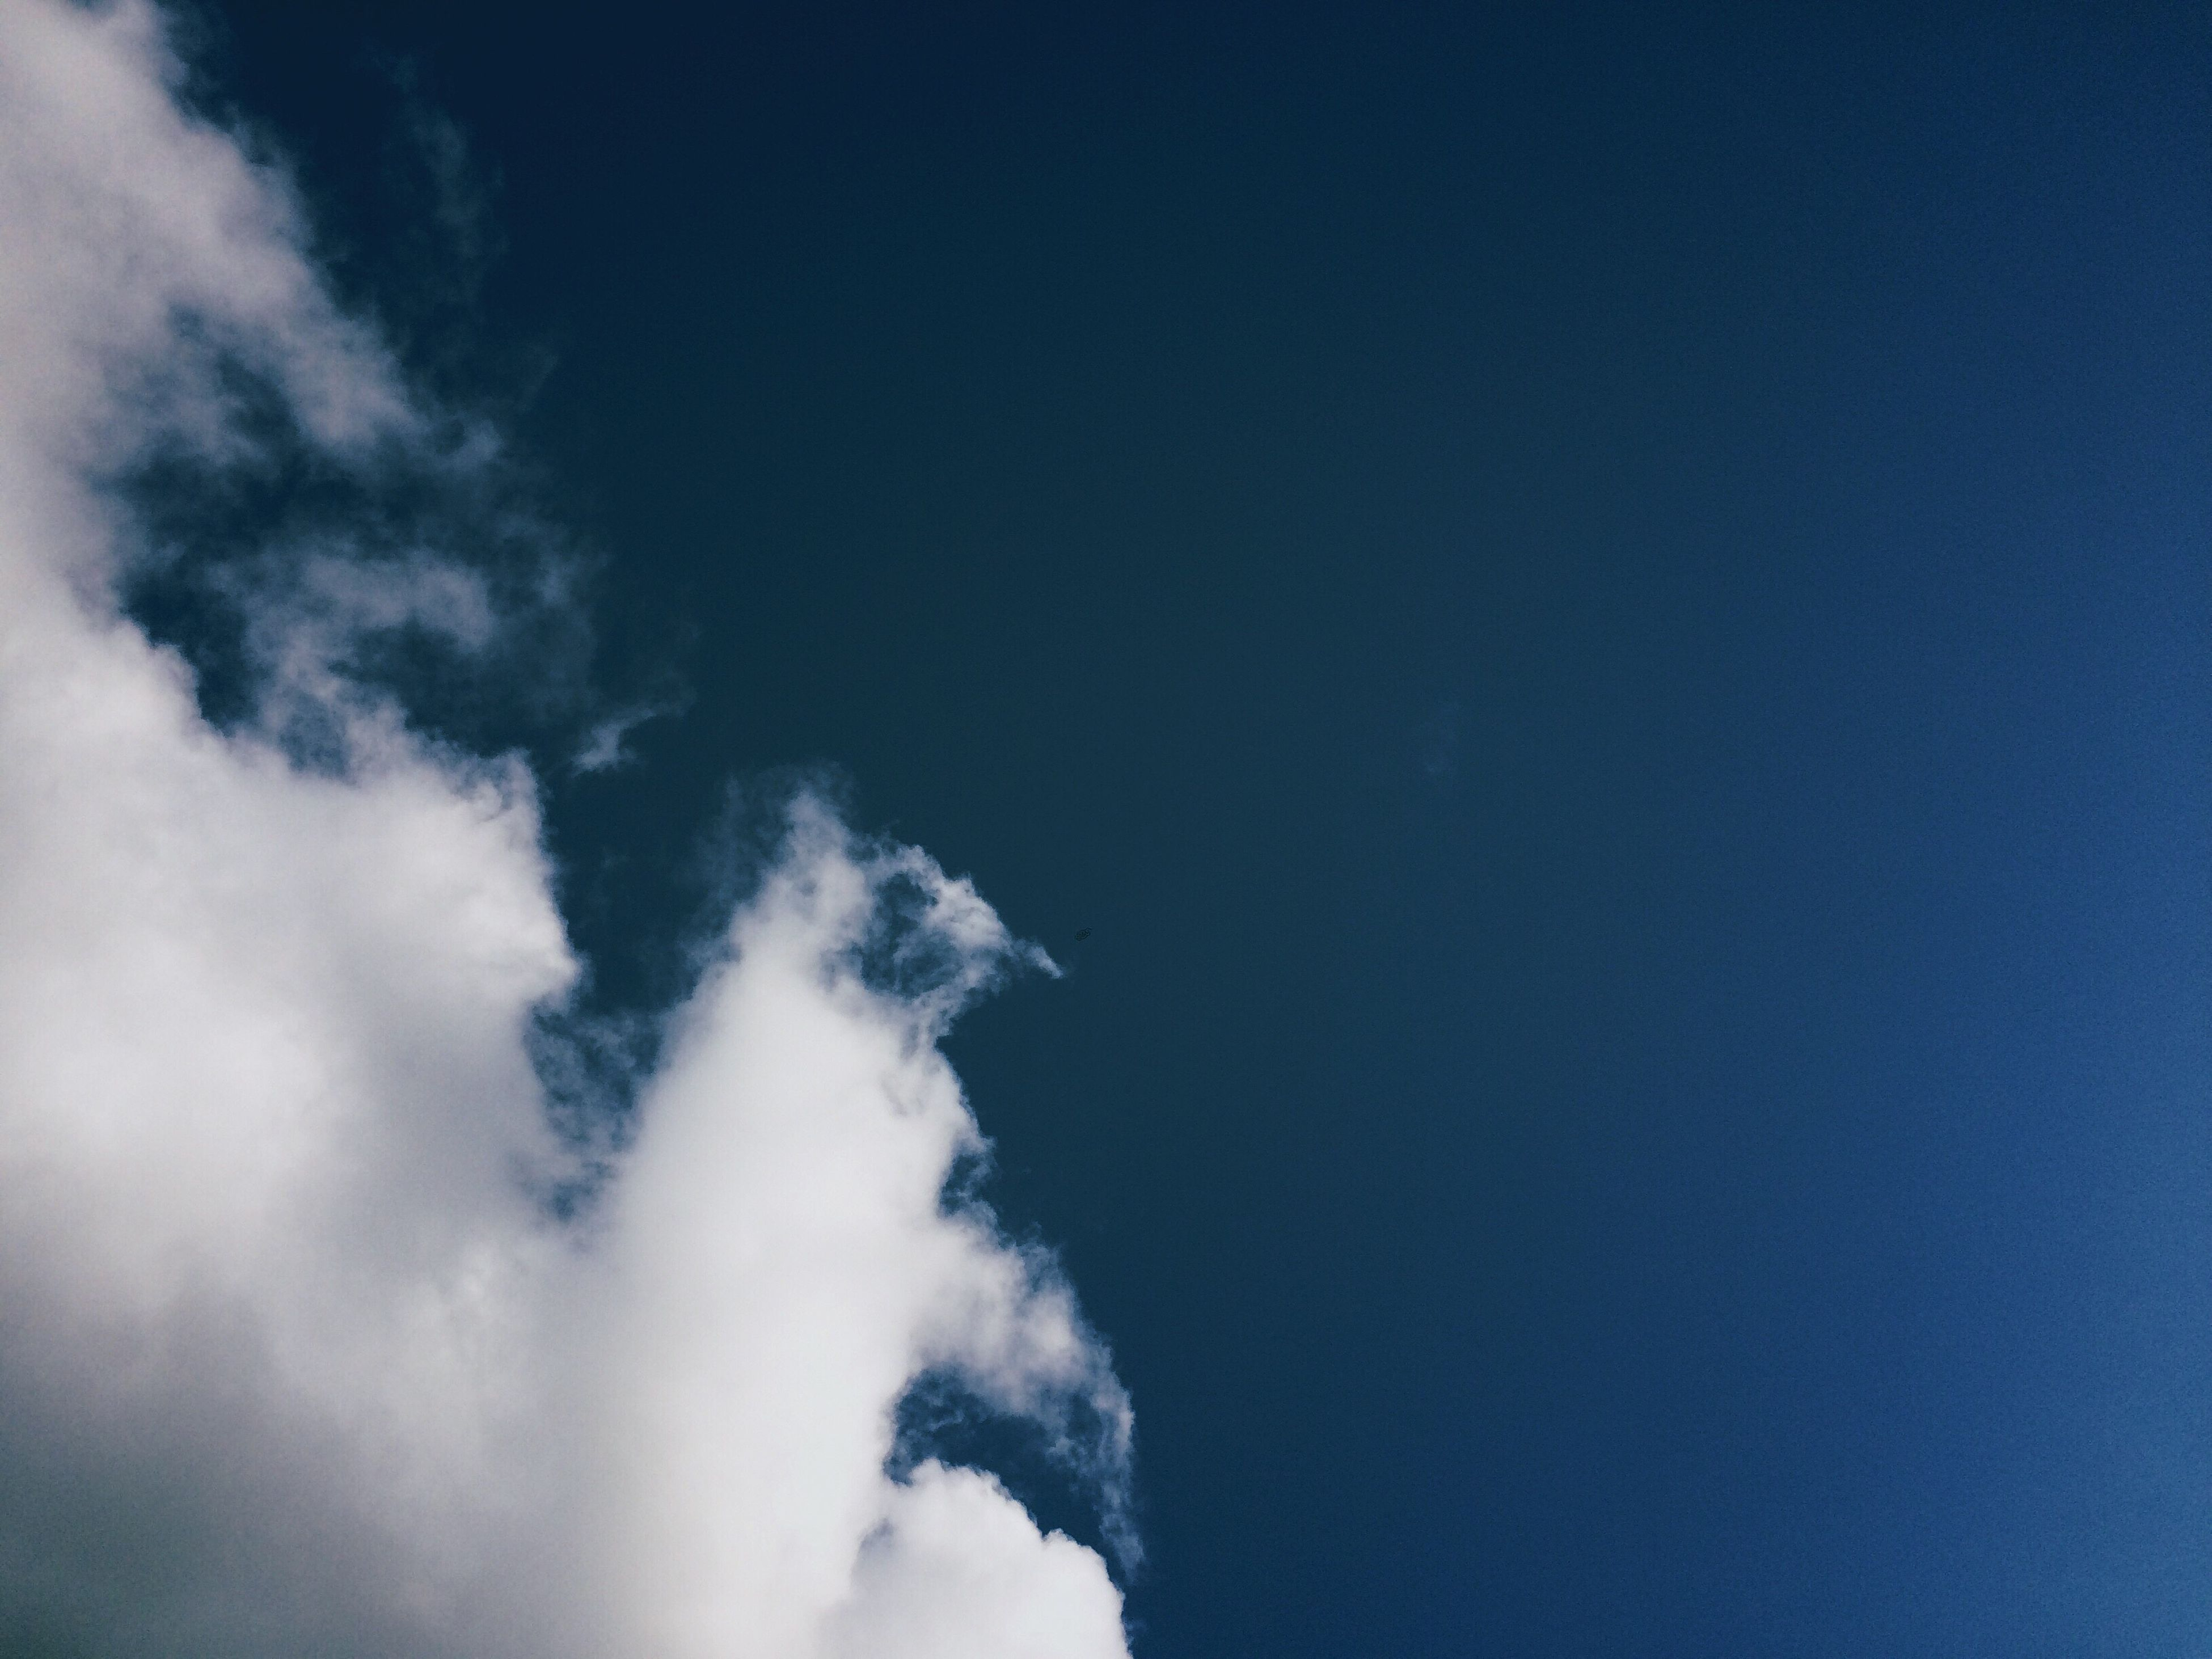 low angle view, tranquility, sky, beauty in nature, blue, scenics, nature, tranquil scene, cloud, day, sky only, outdoors, majestic, cloud - sky, no people, cloudscape, dreamlike, heaven, non-urban scene